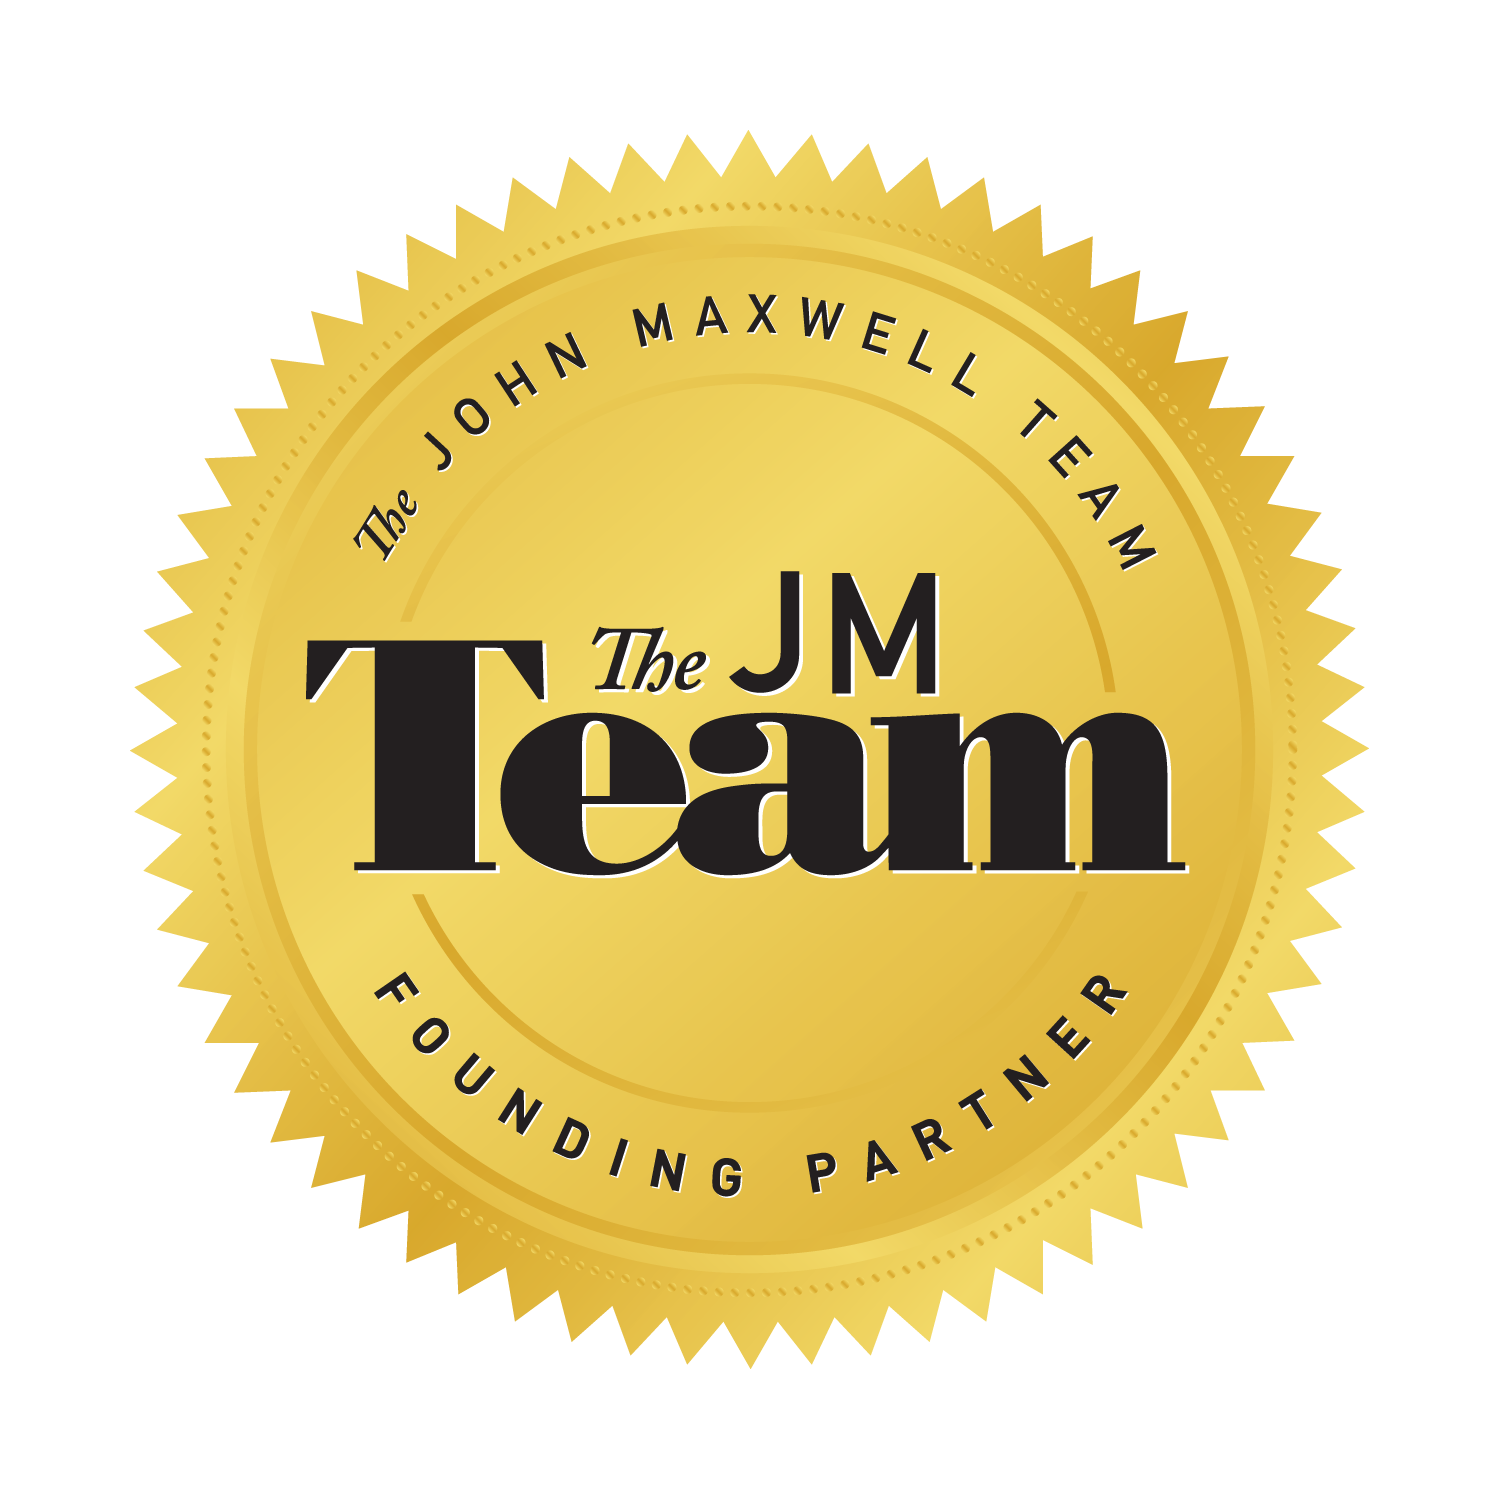 John Maxwell Team - Founding Partner Seal